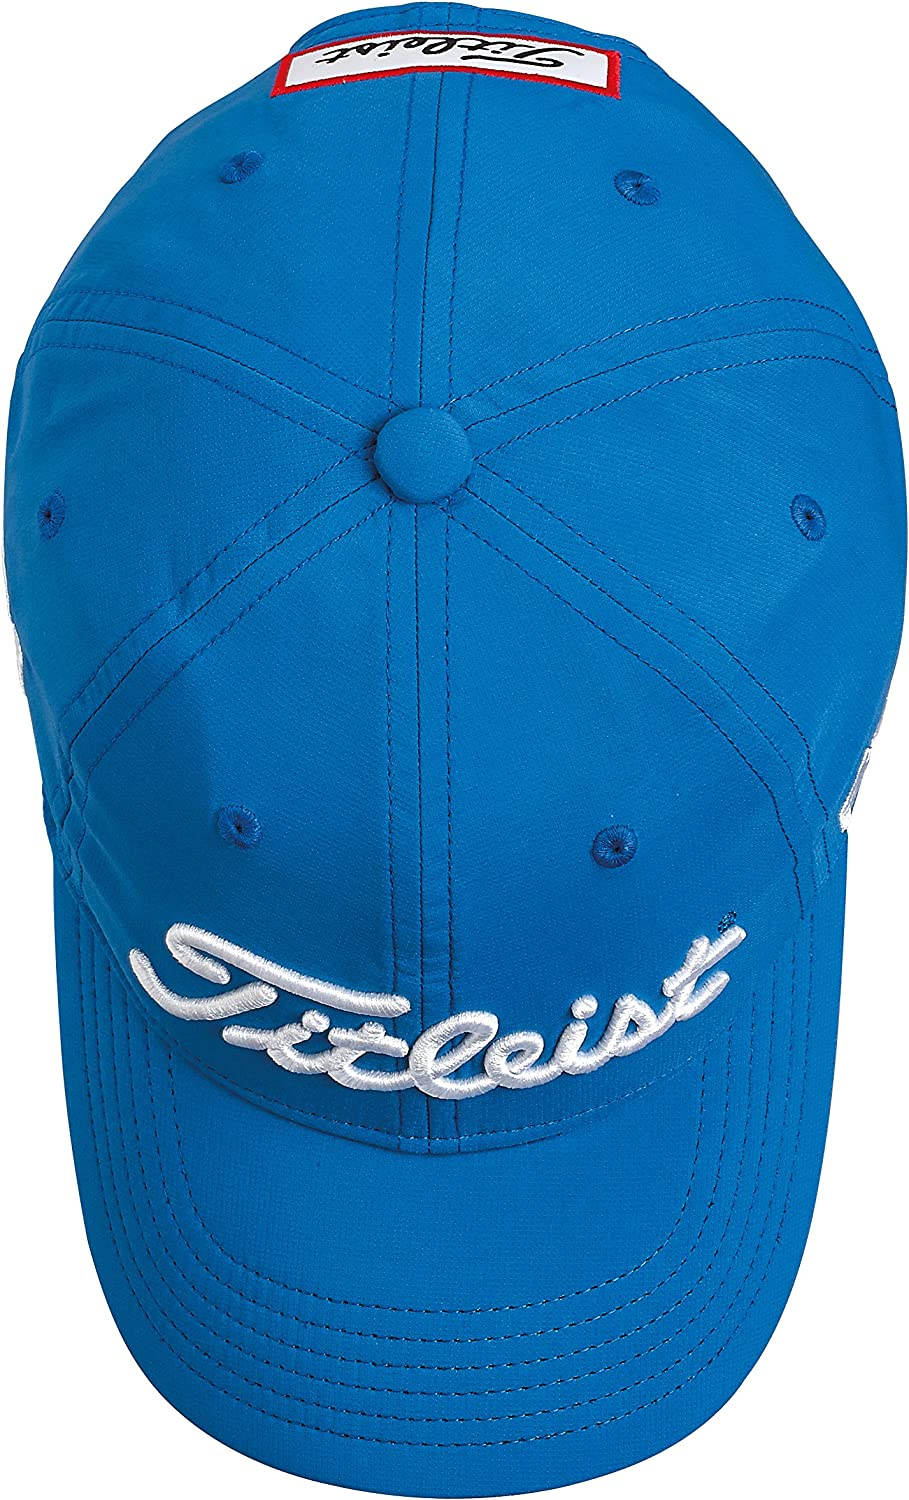 Blue Blue Th7ajrpea-4 TITLEIST Boys Performance Cap Tama/ño del fabricante:Unica One Size